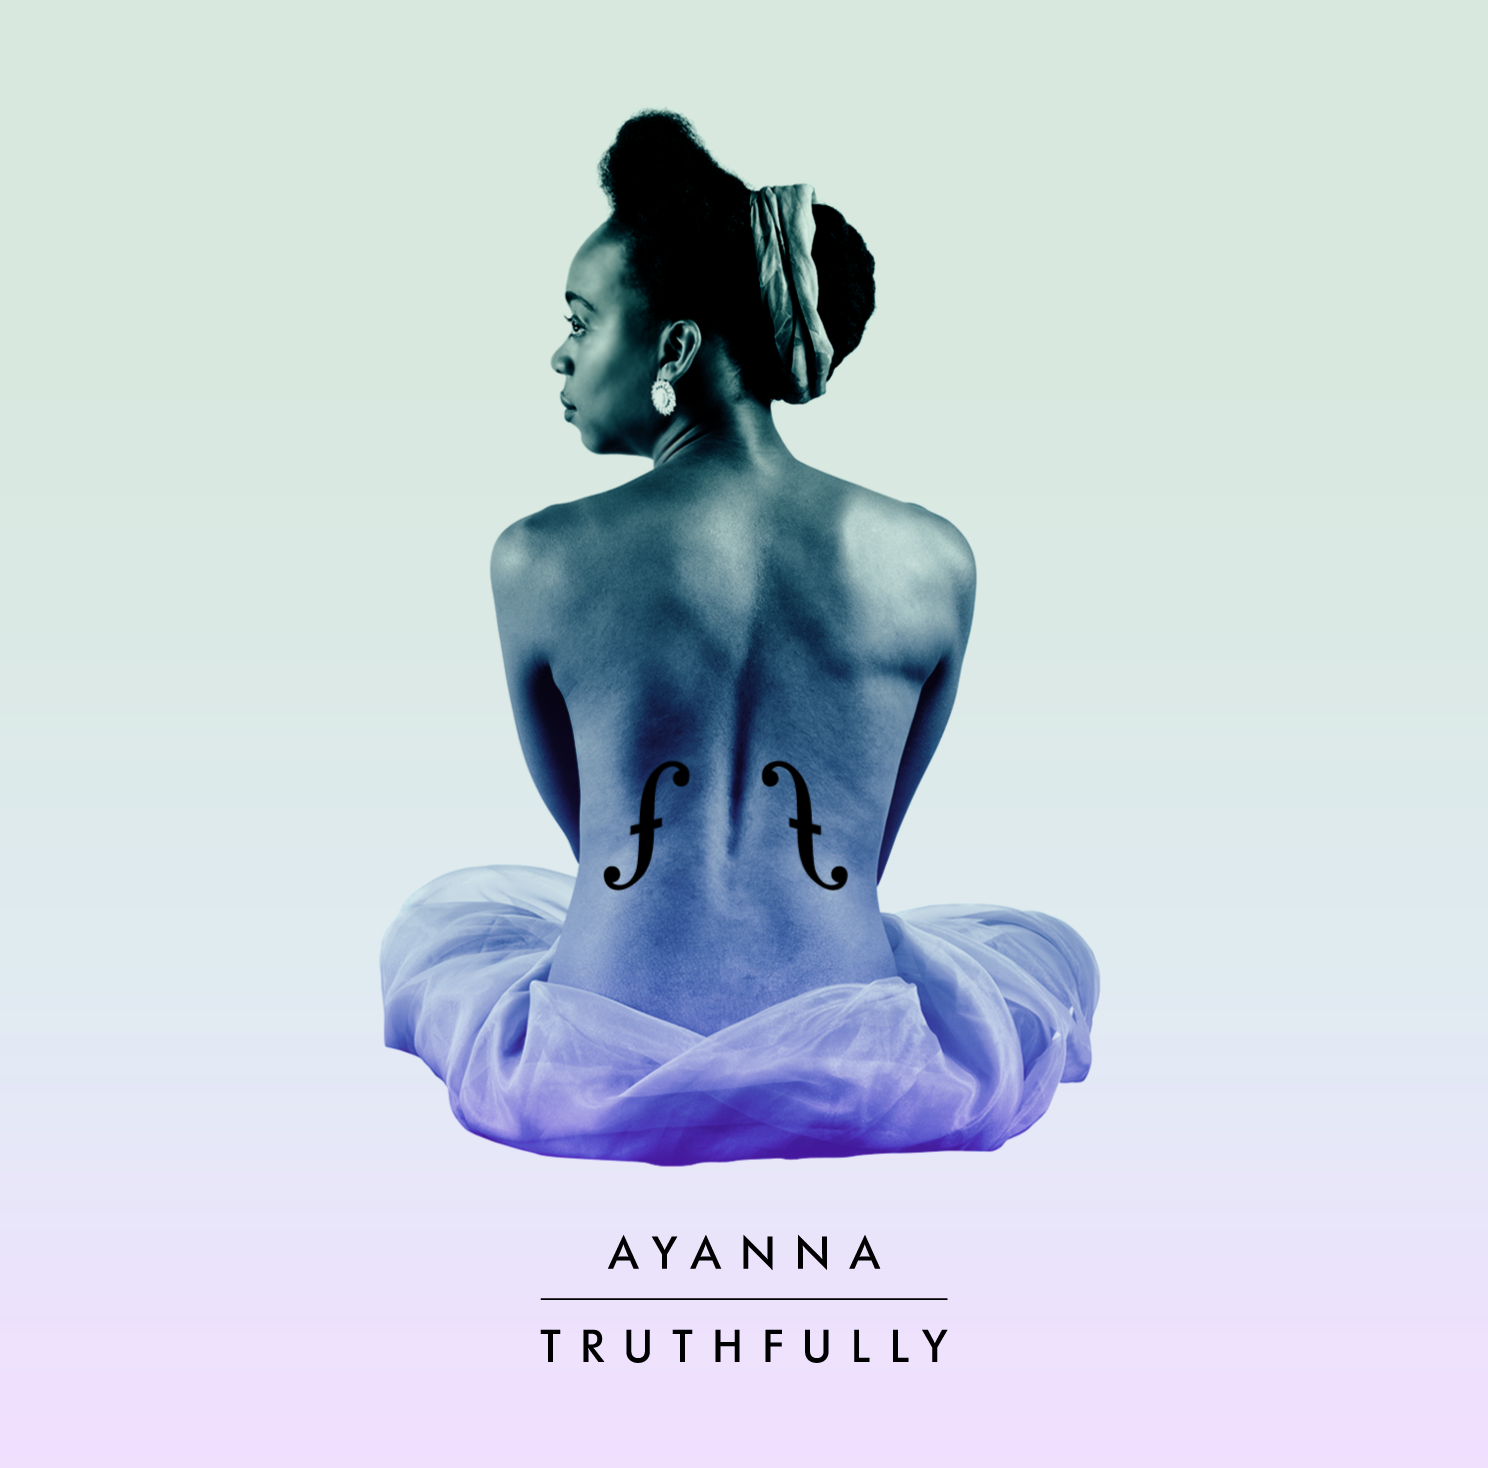 Ayanna - Truthfully EP